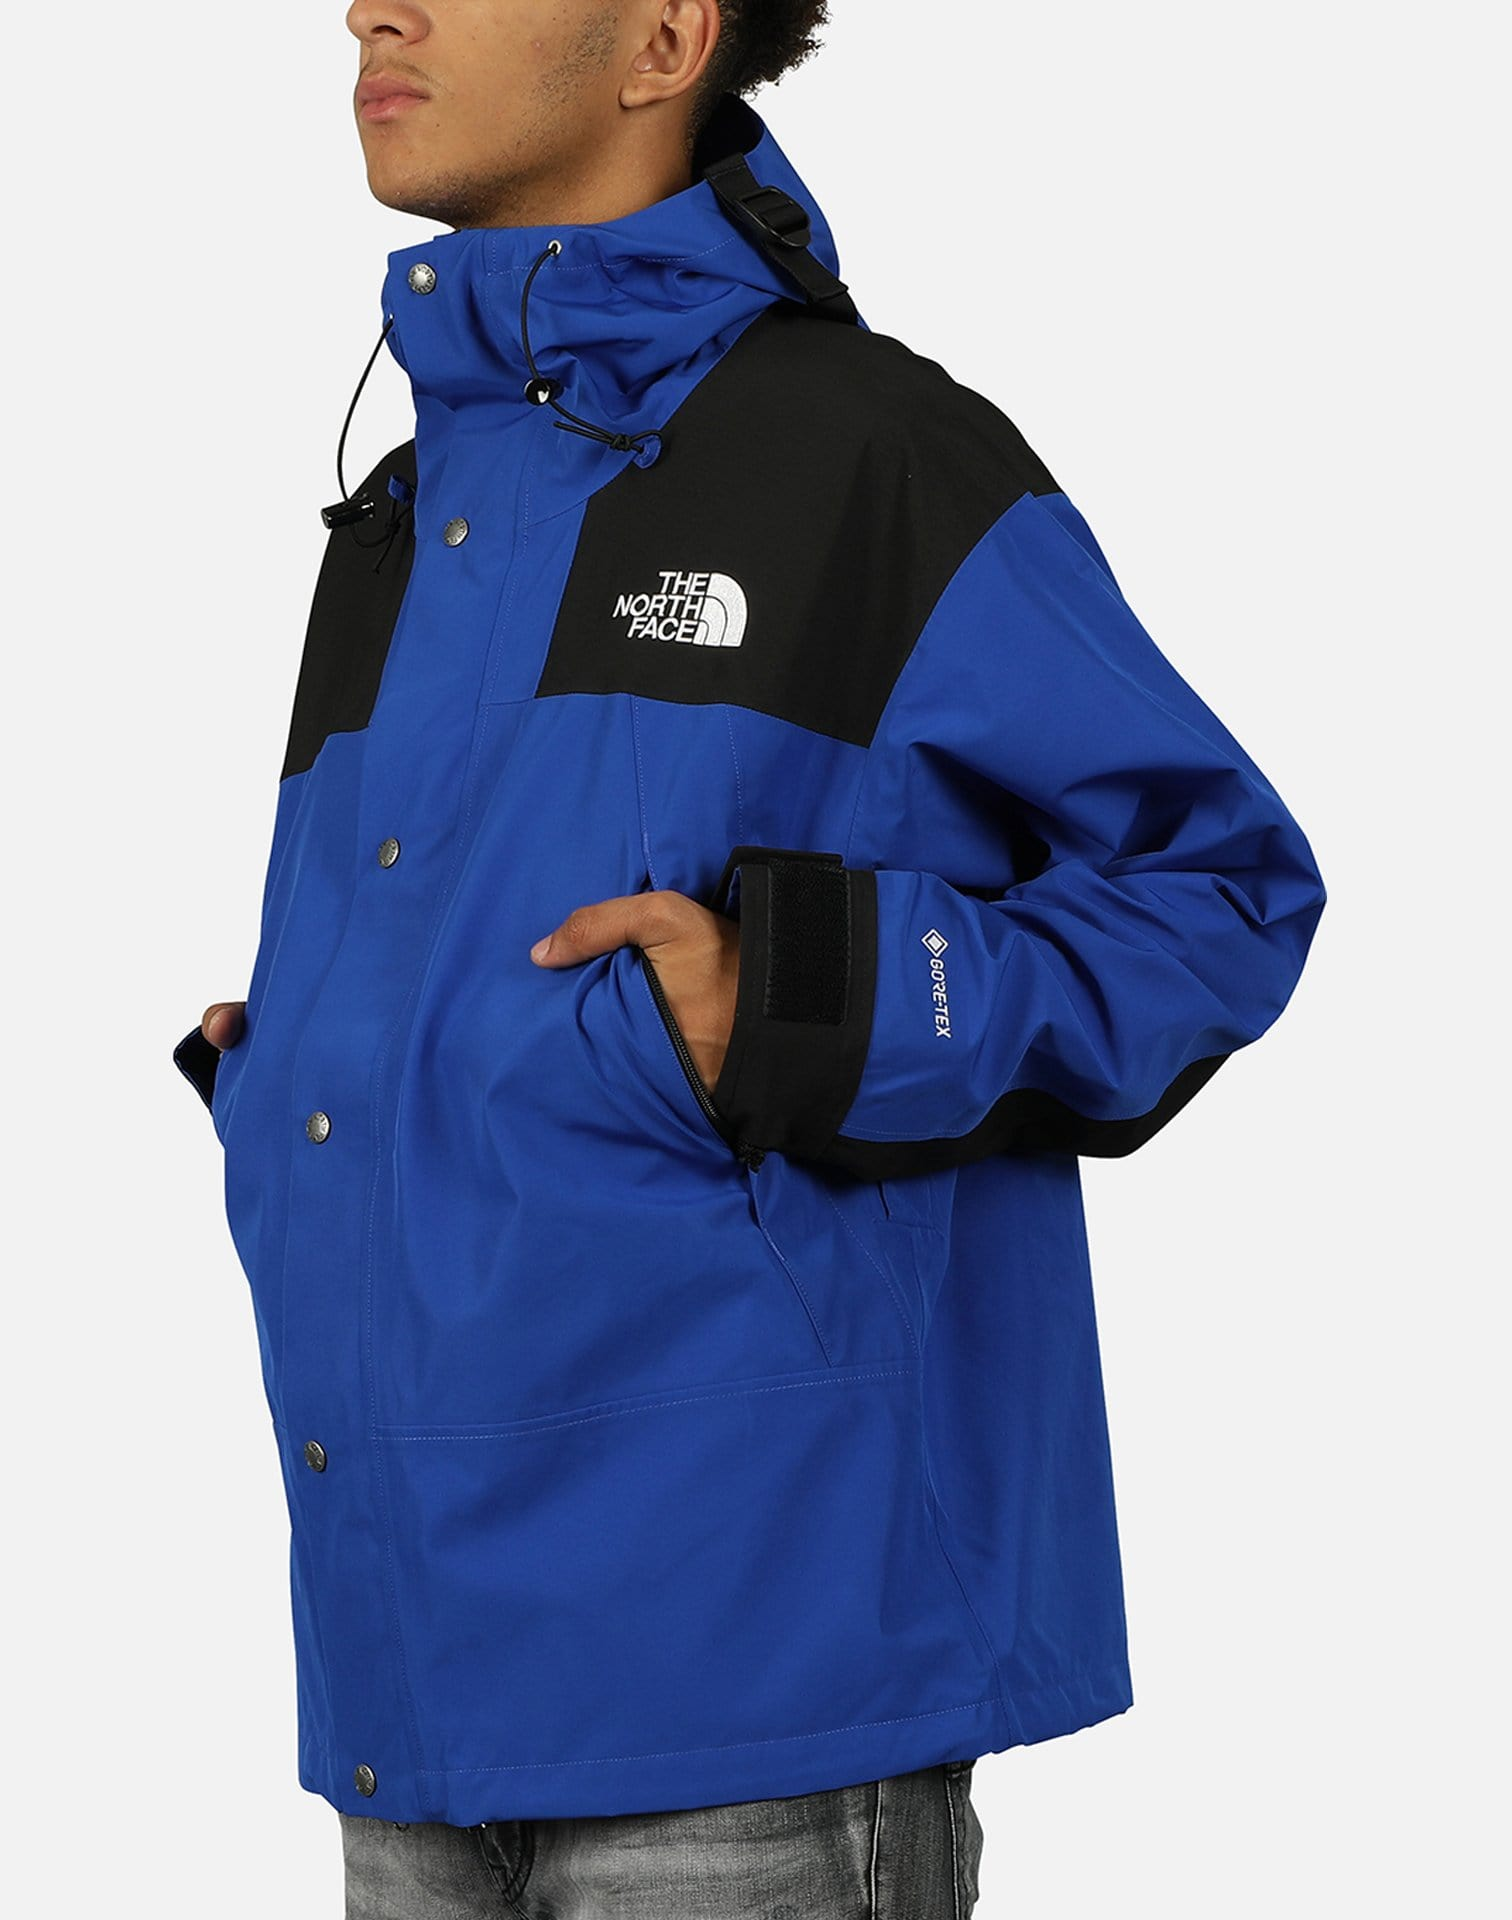 The North Face Men's 1990 Mountain Jacket GTX